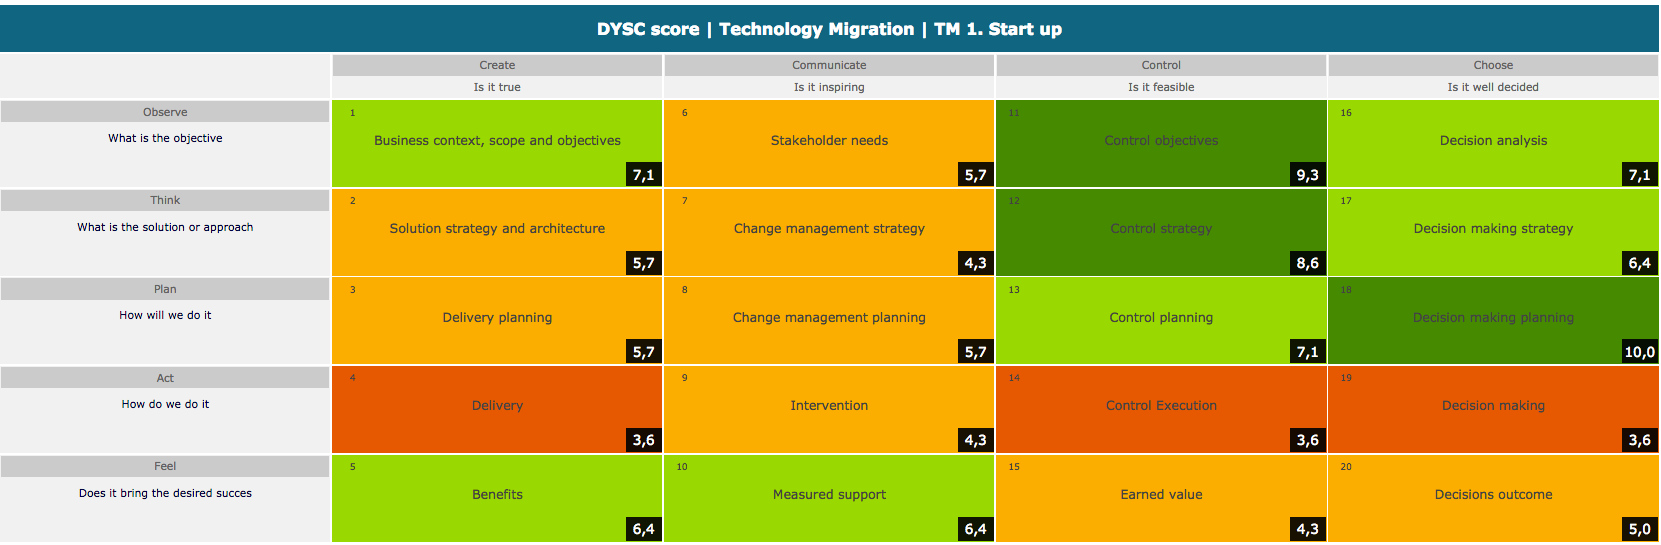 dysc-technology-migration-start-up